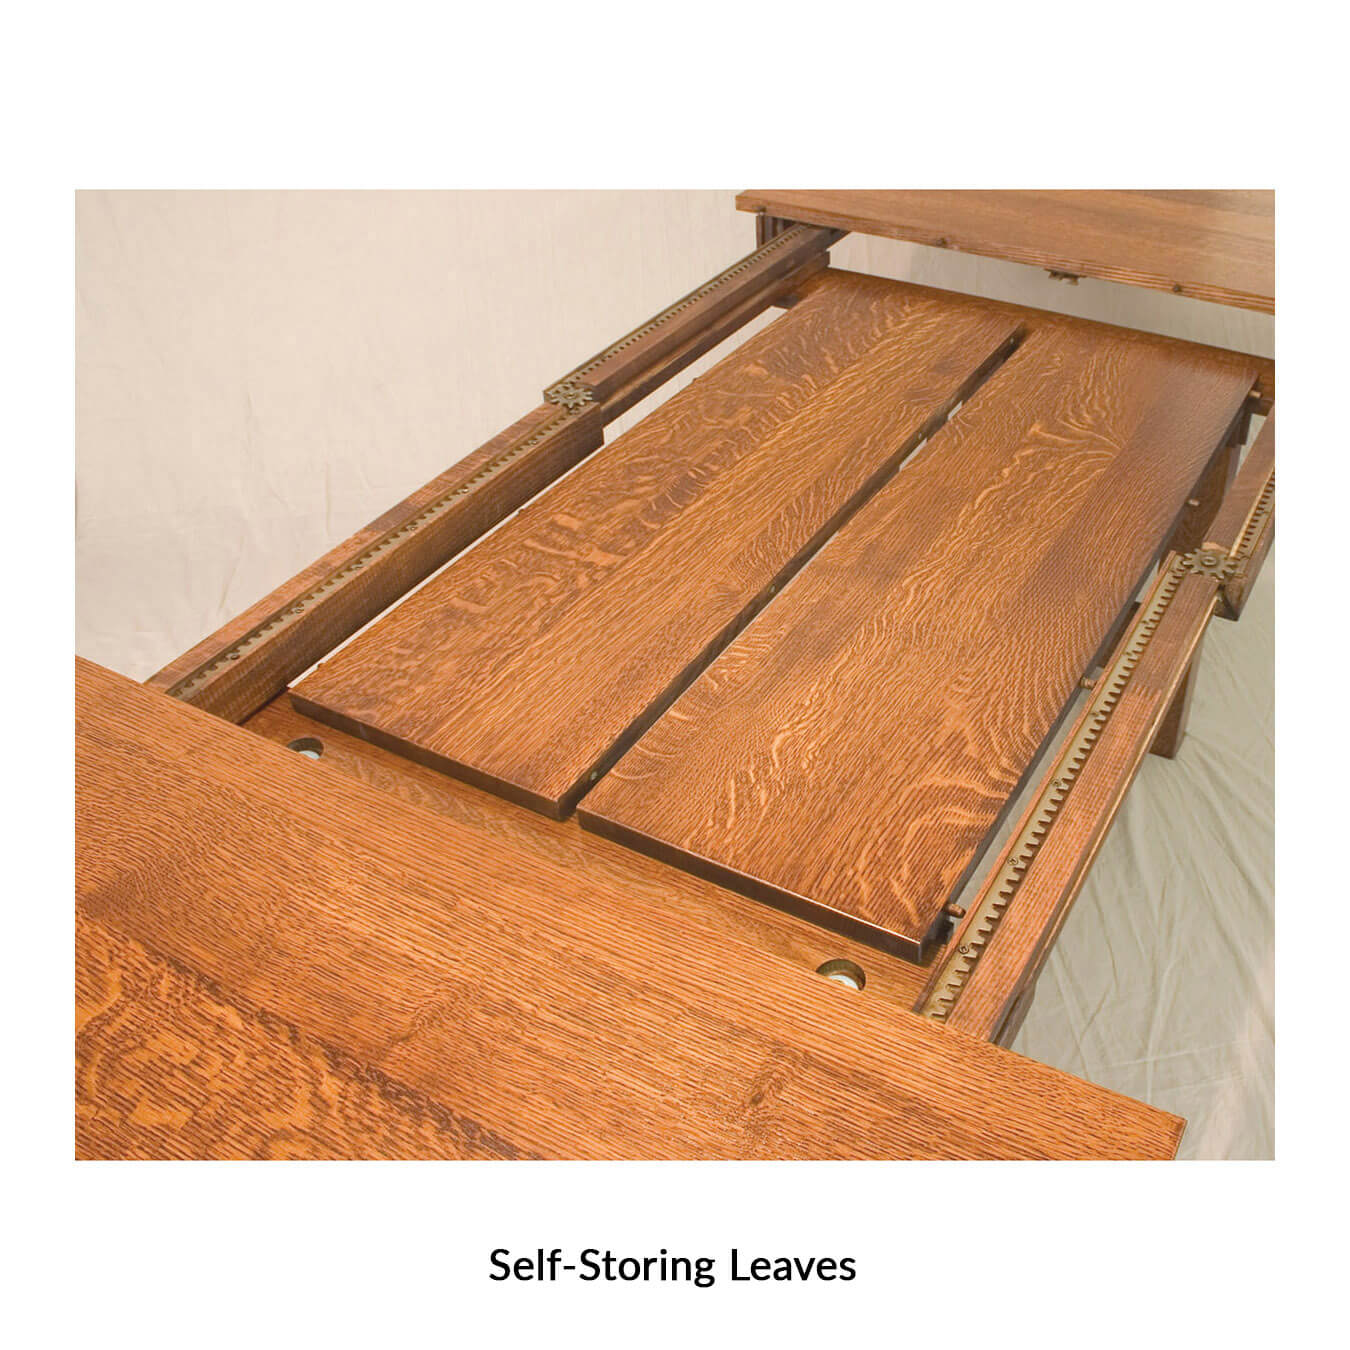 4.0-self-storing-leaves.jpg